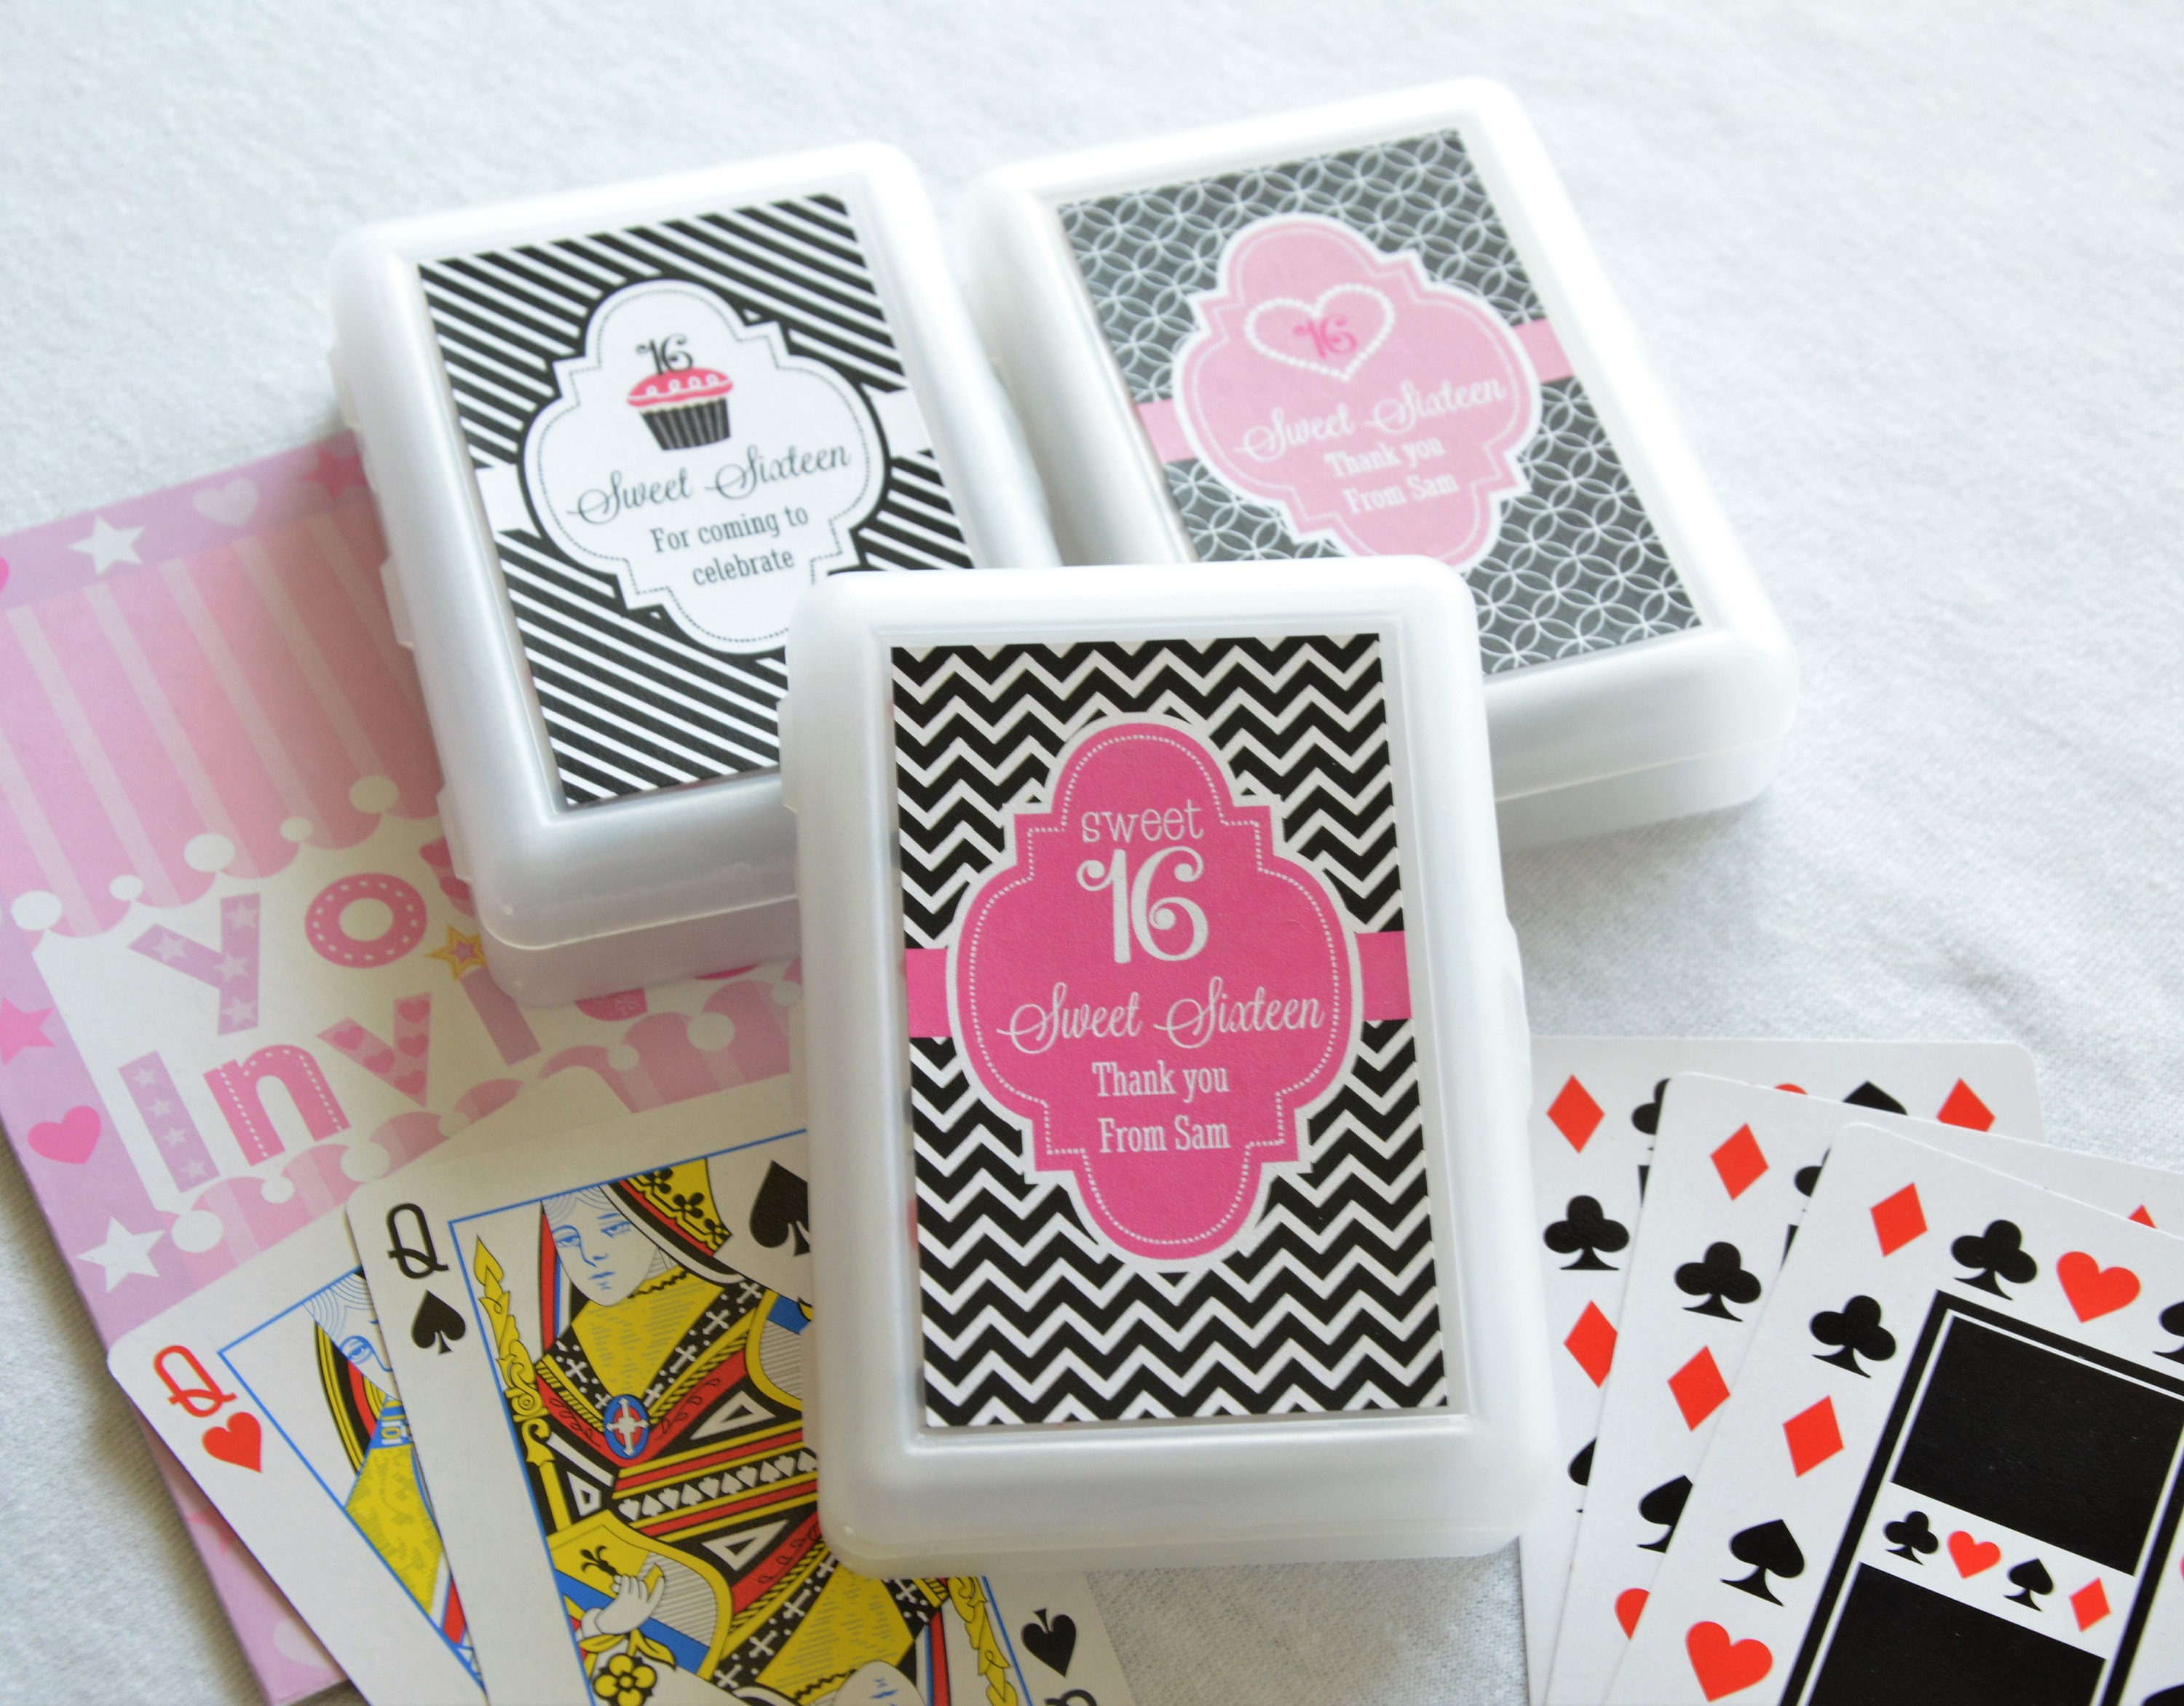 50 Decks Personalized Playing Cards Birthday Favor Sweet